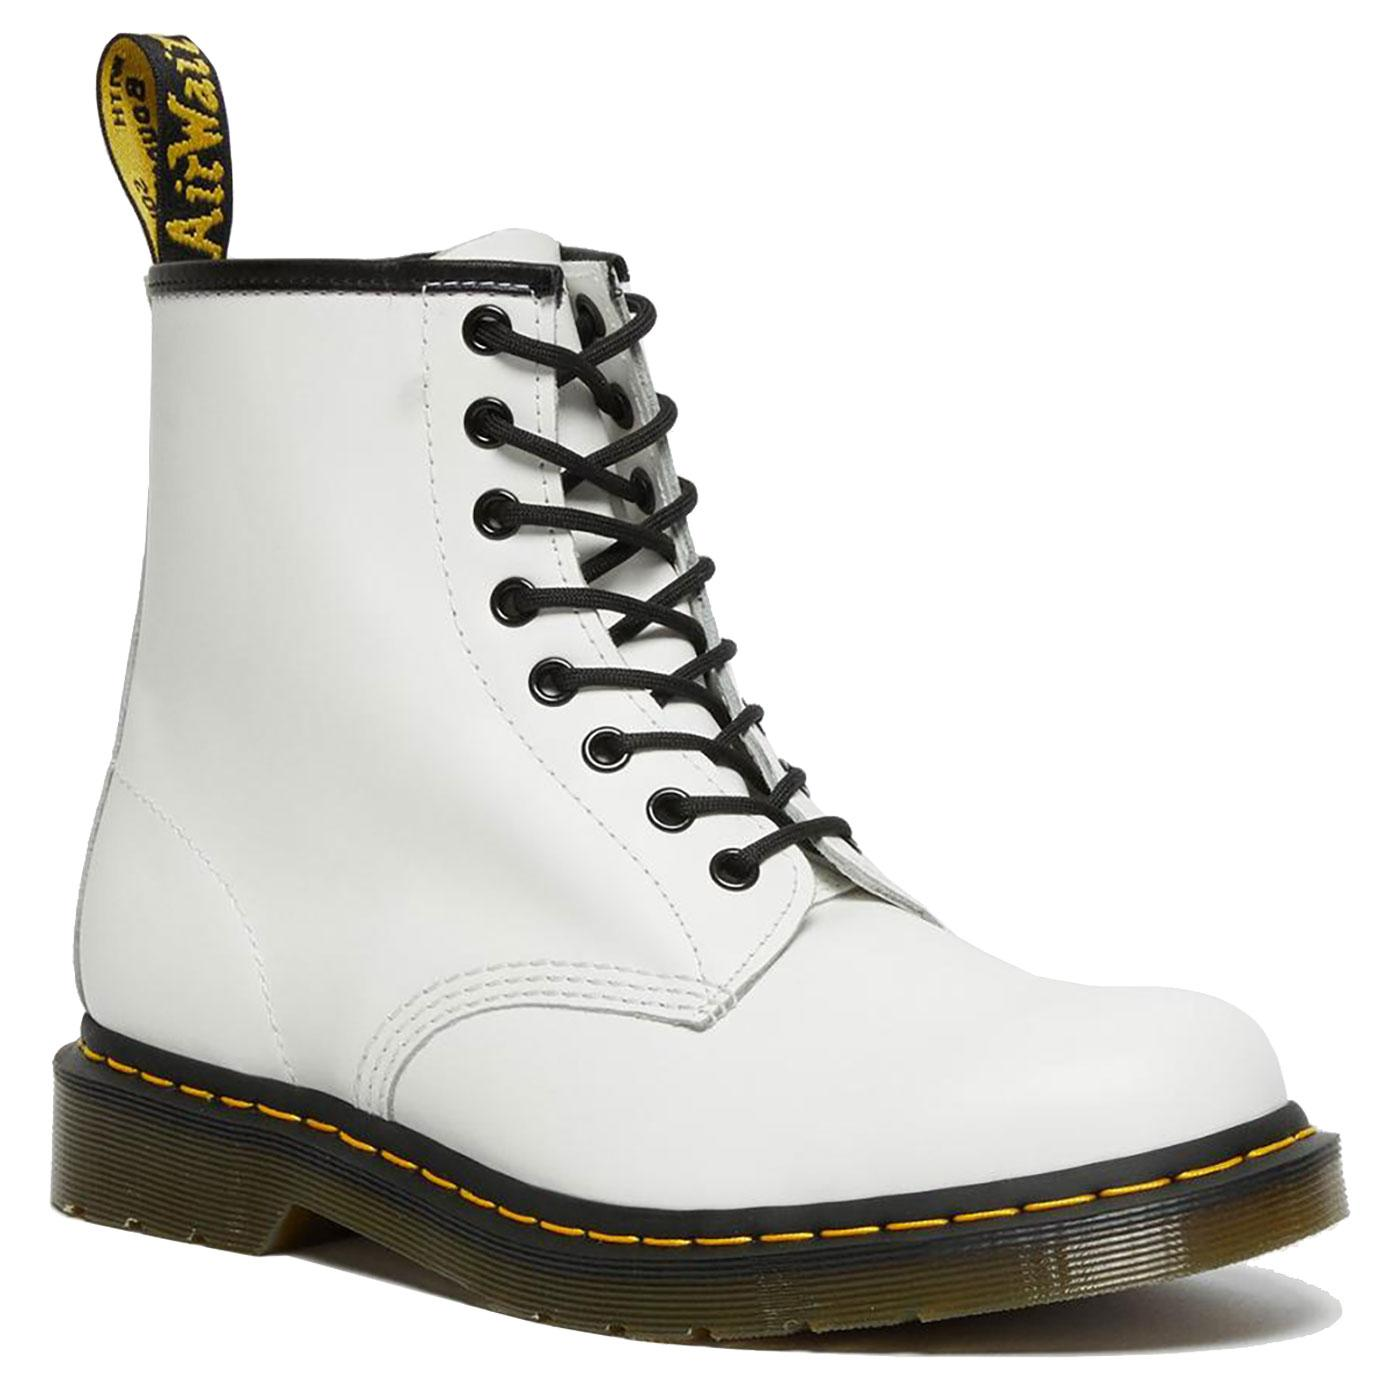 1460 DR MARTENS Womens Smooth White Leather Boots